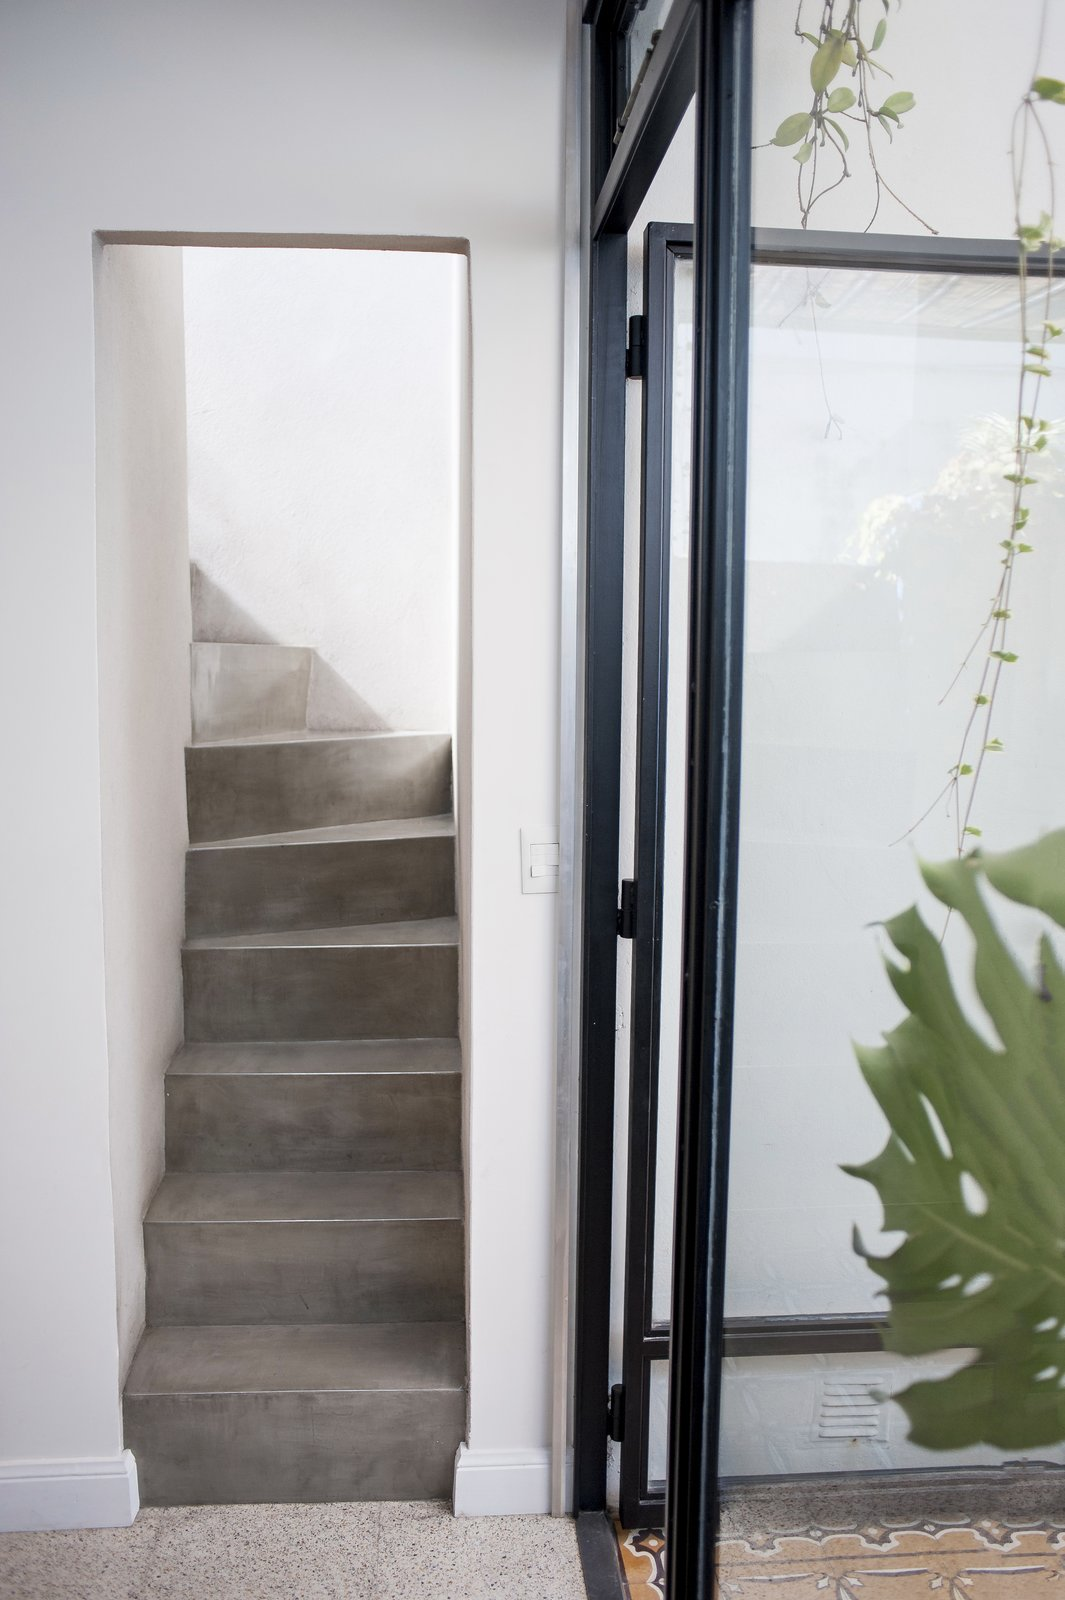 The stairs that used to be out in the patio are now inside thanks to the window and cealing that has been built after them.  Artigas